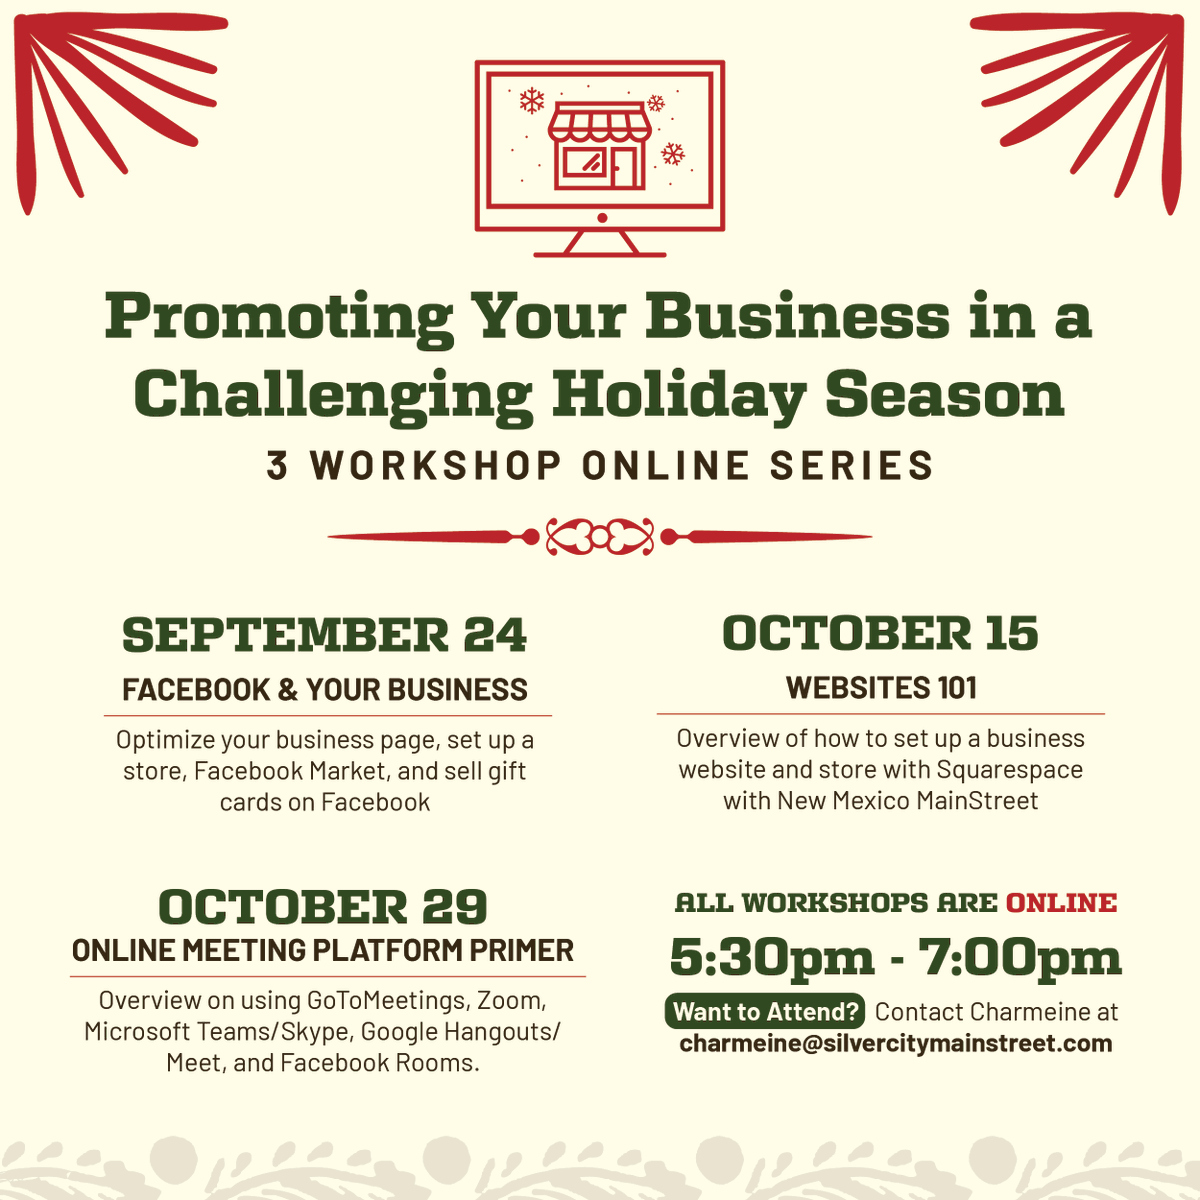 Silver City MainStreet's newsletter highlights their upcoming workshop series on business promotion, the Copper Cooperative Clean Up, and the 30th Annual Lighted Christmas Parade plans! https://t.co/sNu6c2dsRY #NMEcon #NMMainStreet #VisitSilverCity https://t.co/v2CJtLoaNP